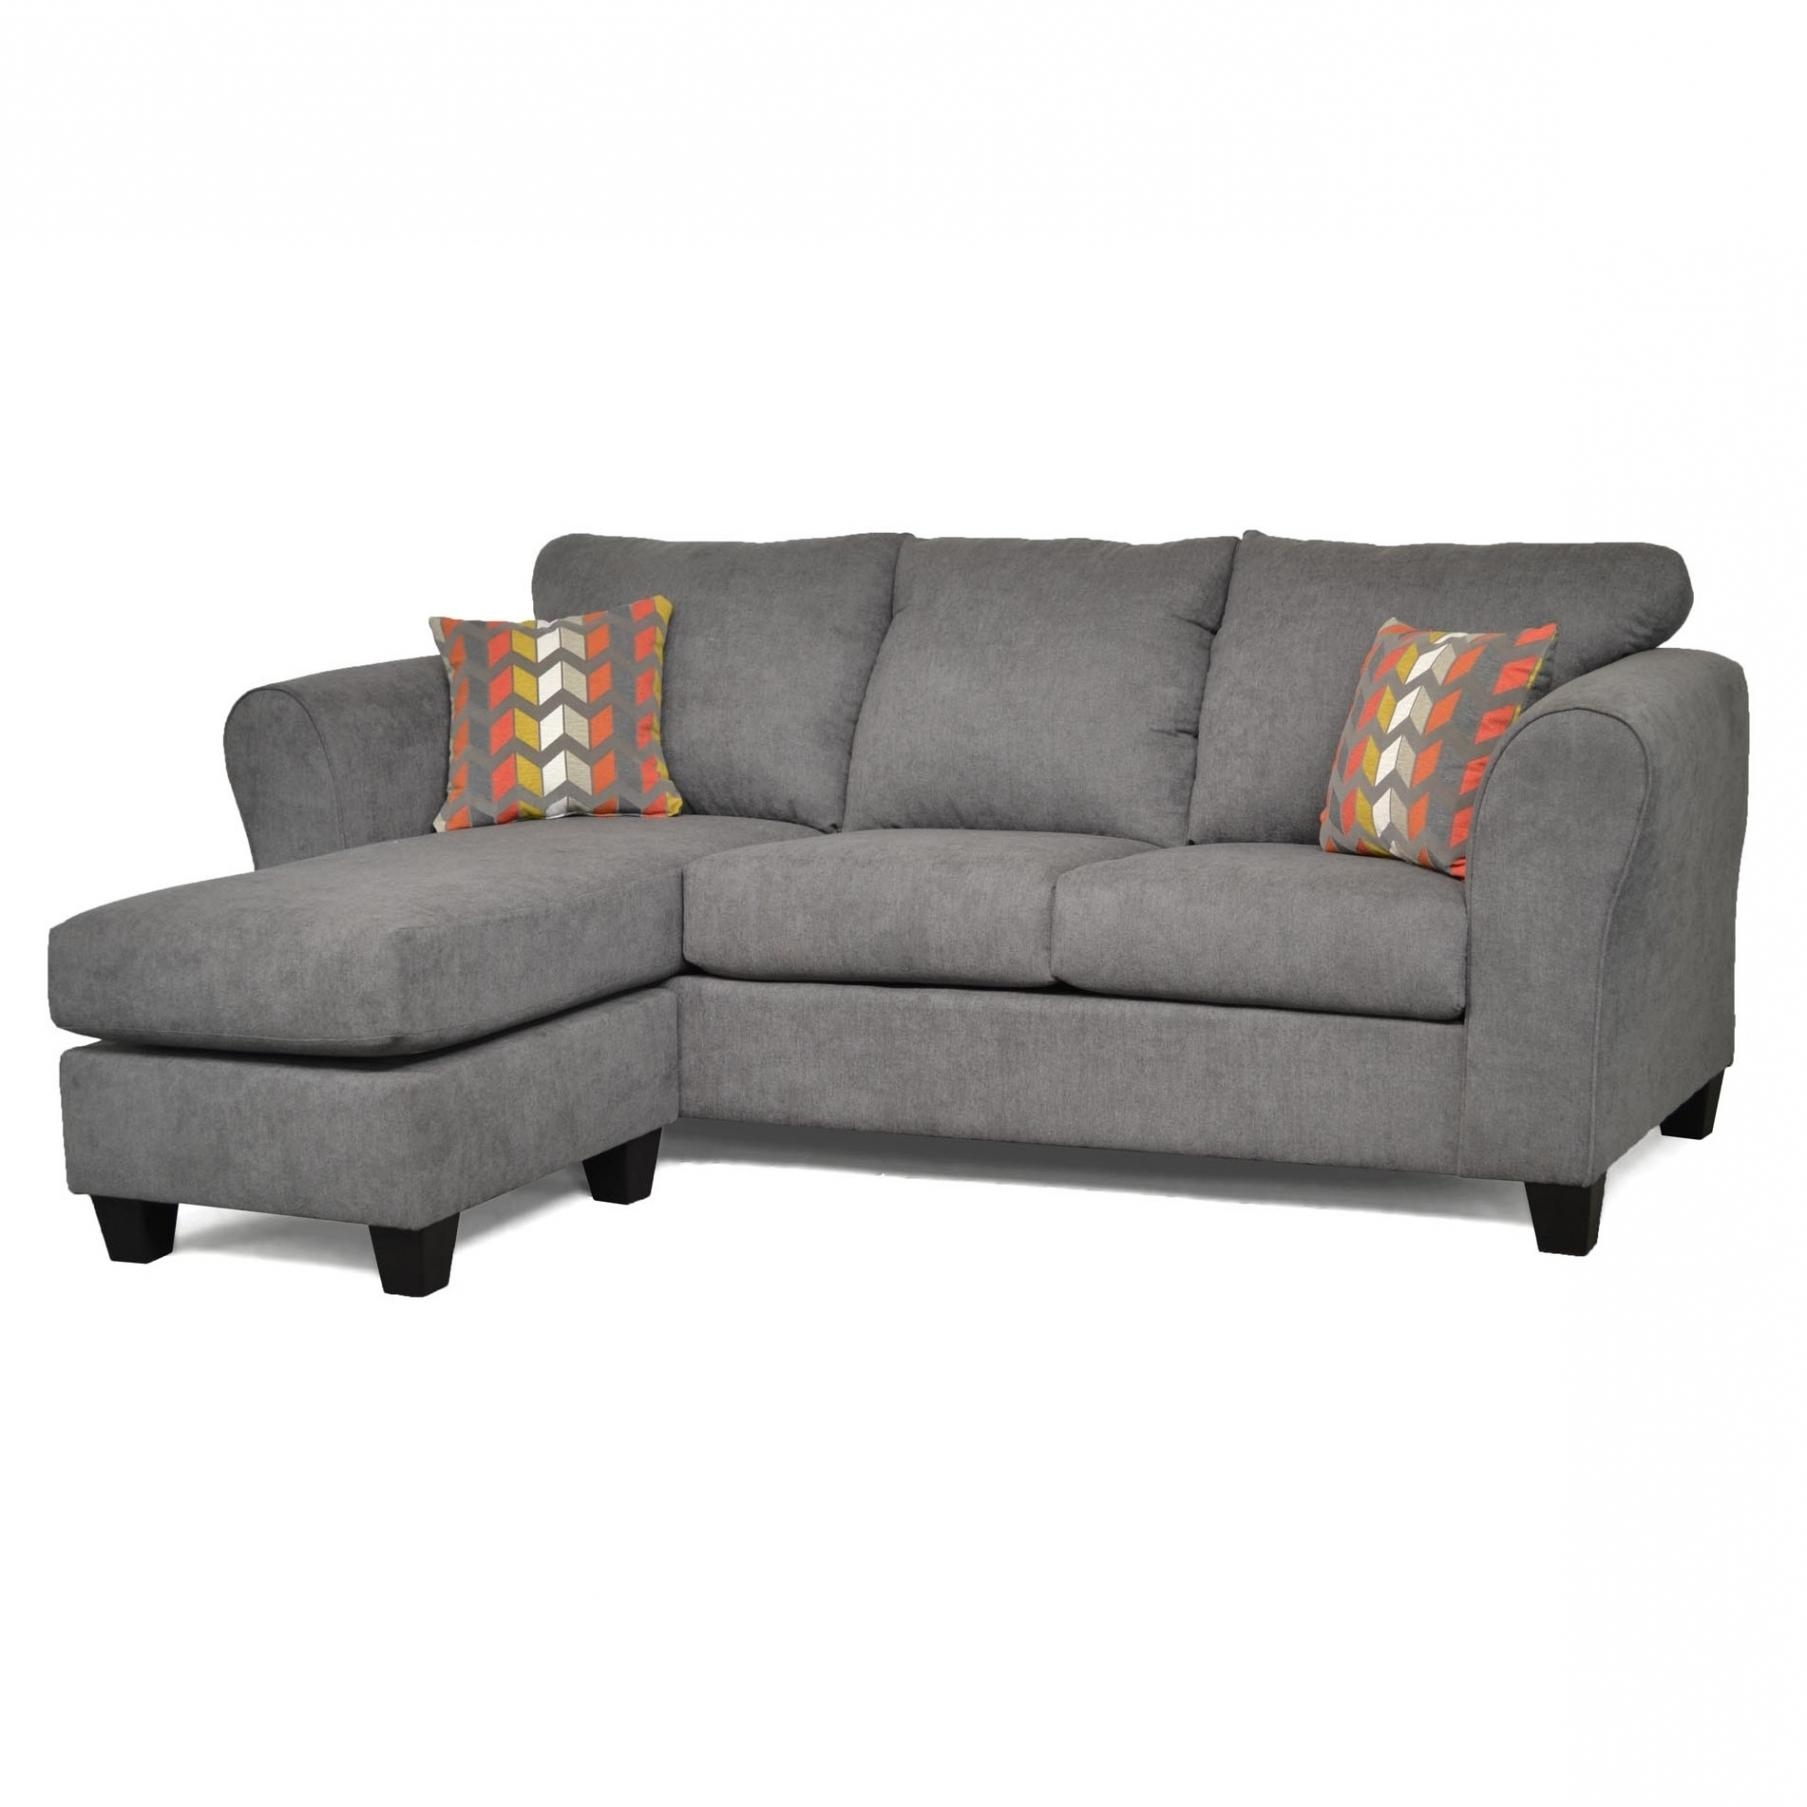 Best Of Small Leather Sectional Sofa | Sofa Ideas Pertaining To Small Scale Leather Sectional Sofas (Image 3 of 20)